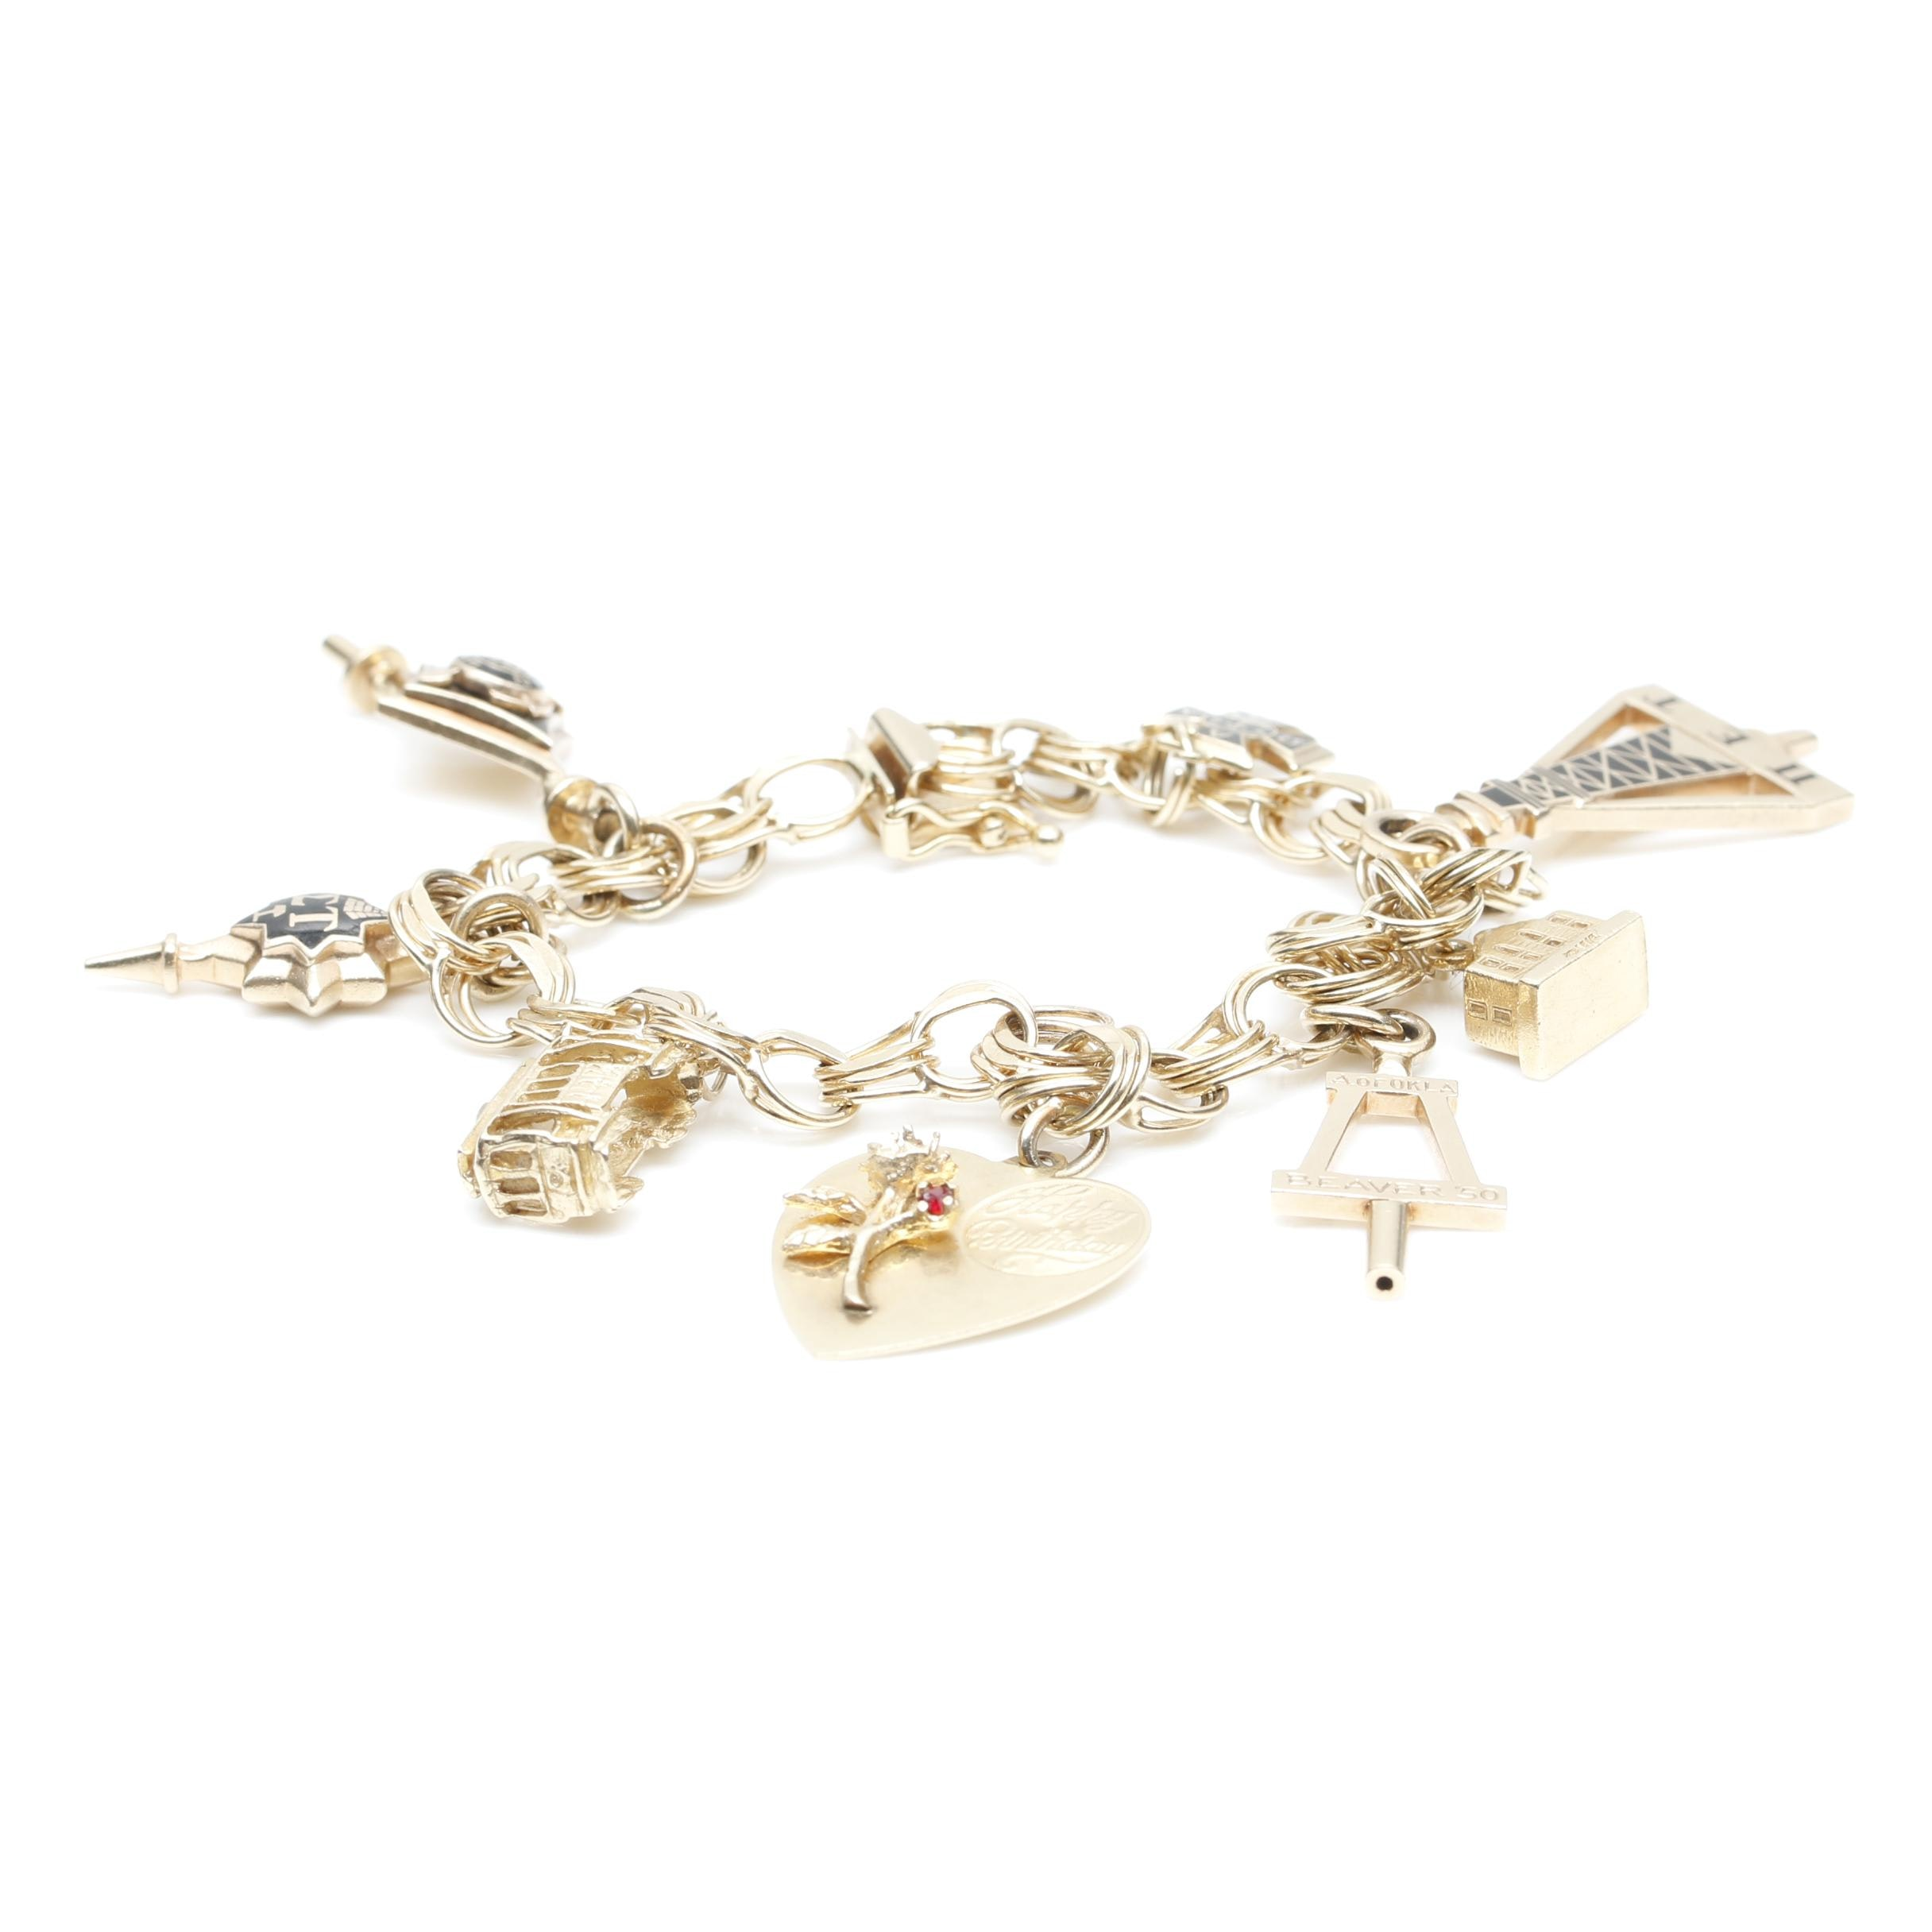 14K Yellow Gold Black Enamel Charm Bracelet with Greek Sorority Themed Charms